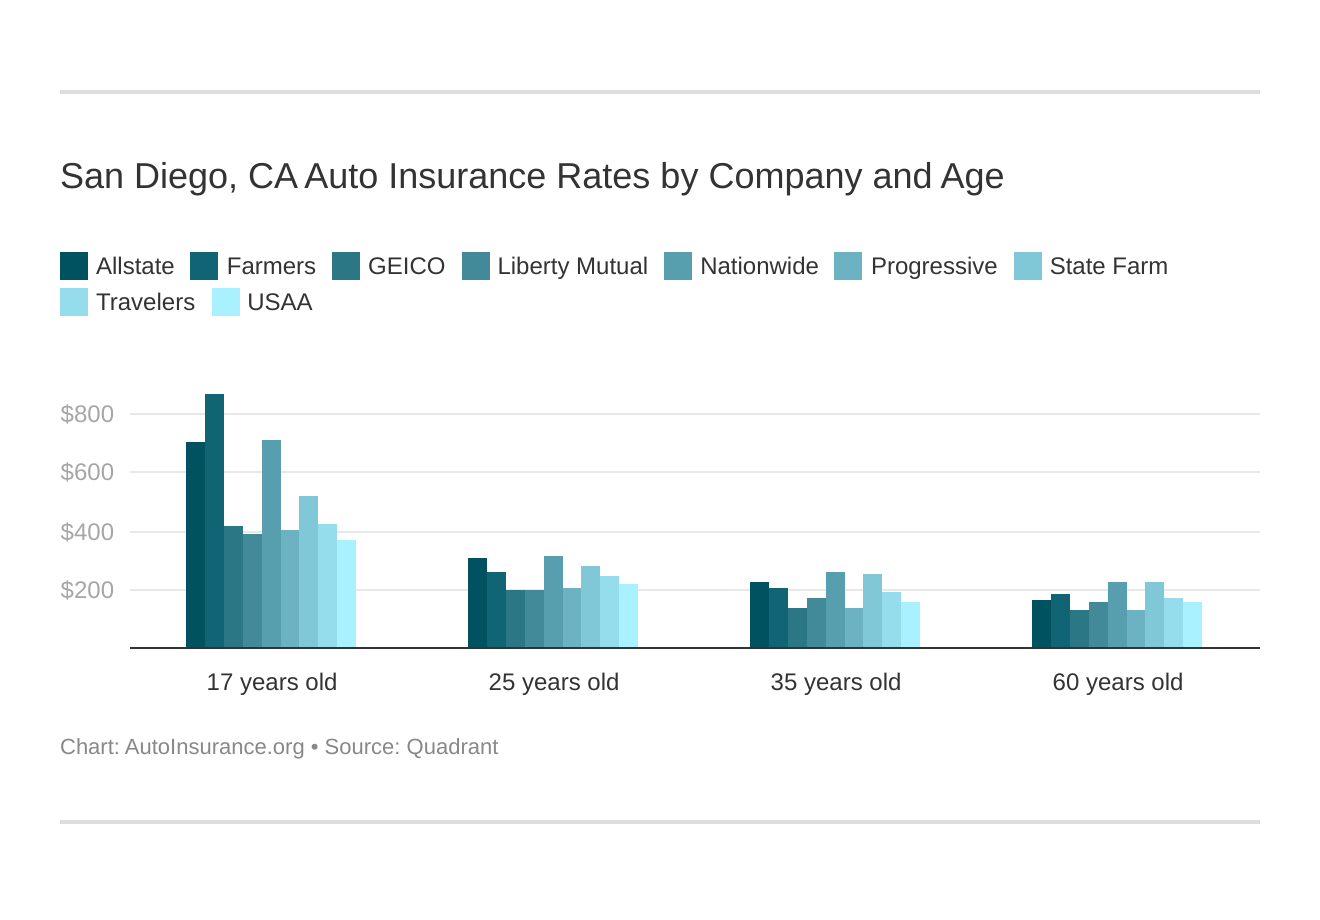 San Diego, CA Auto Insurance Rates by Company and Age